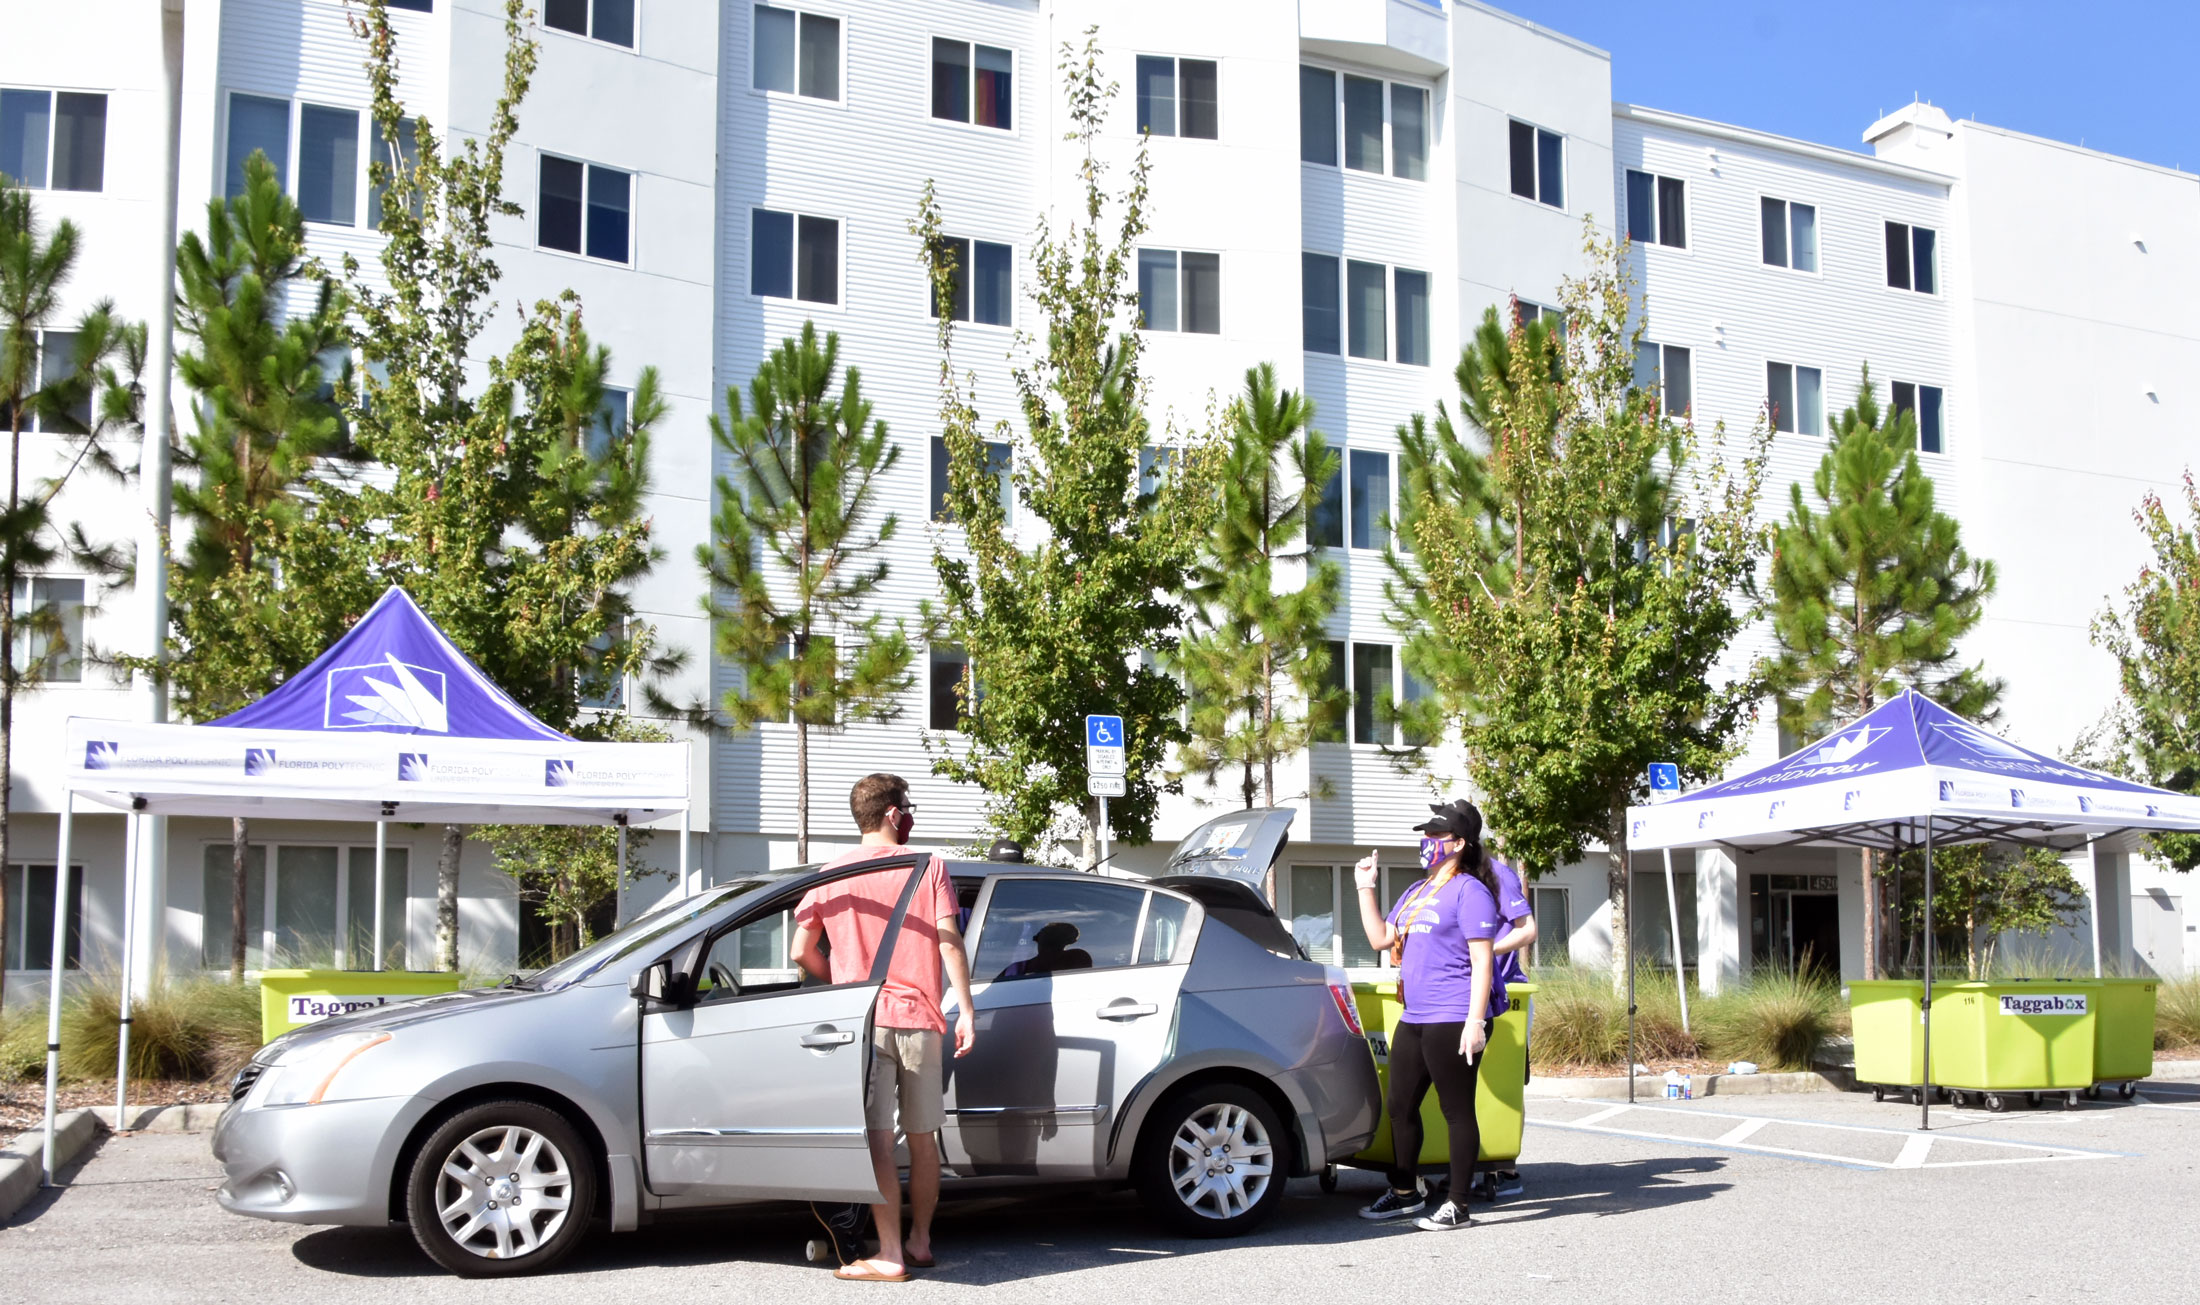 Move-in begins at Florida Poly with new COVID-19 precautions